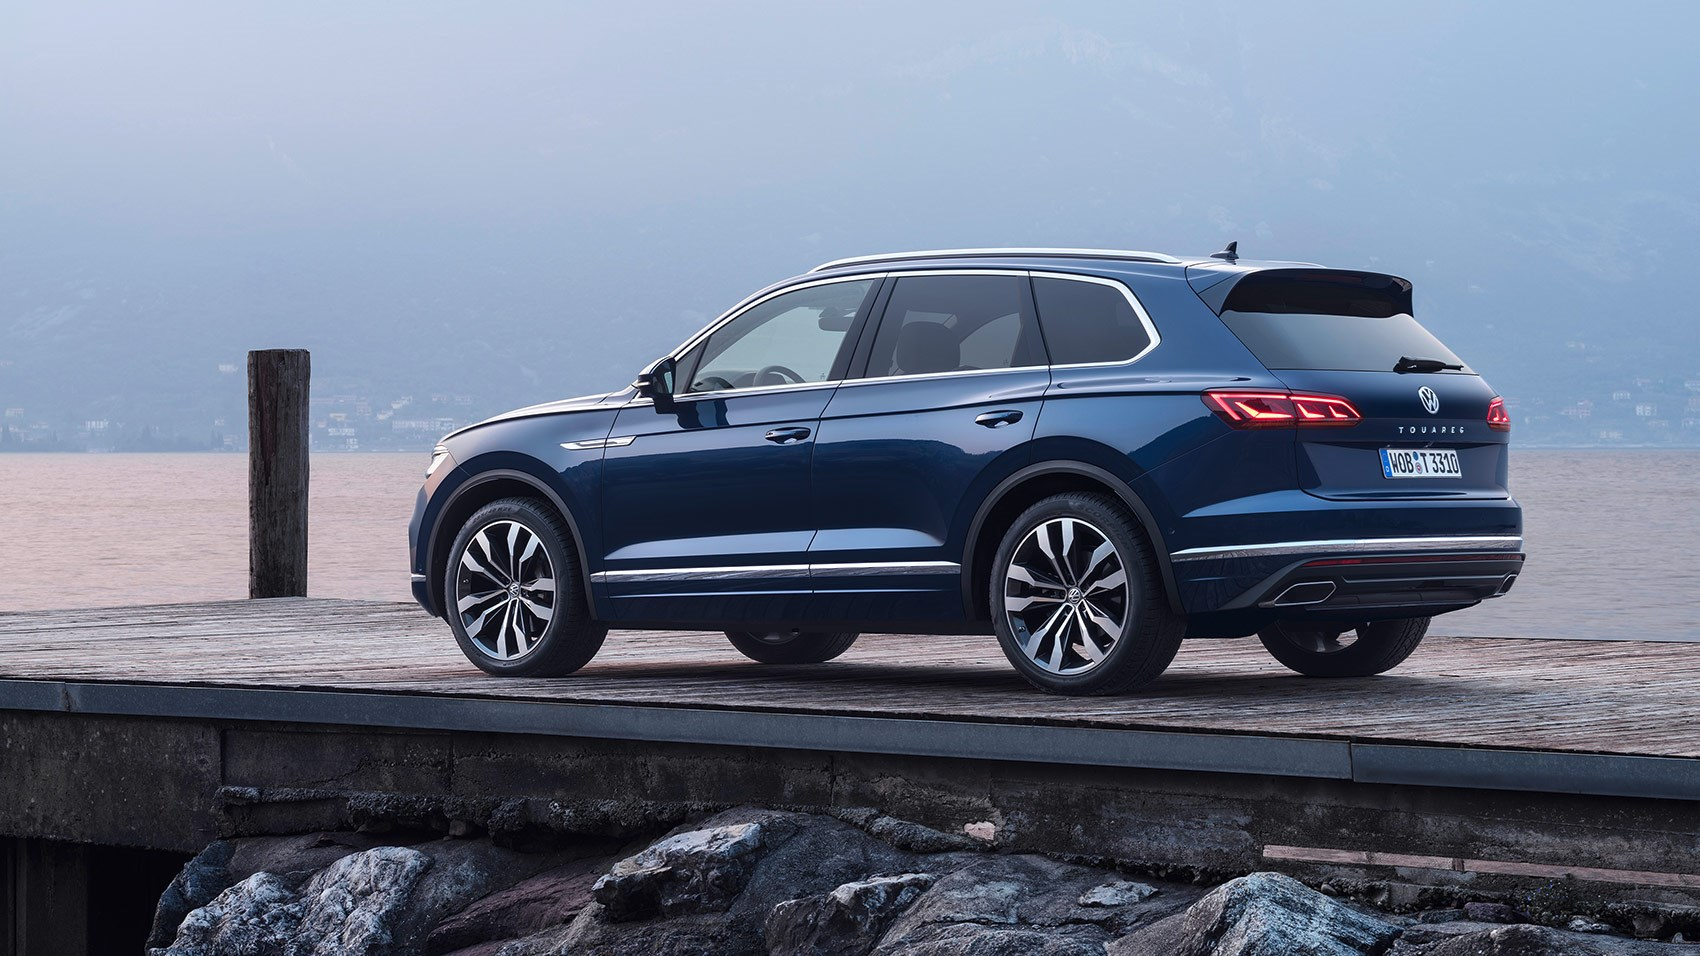 Vw Lease Deals >> VW Touareg review (2018): specs prices on sale date | CAR ...